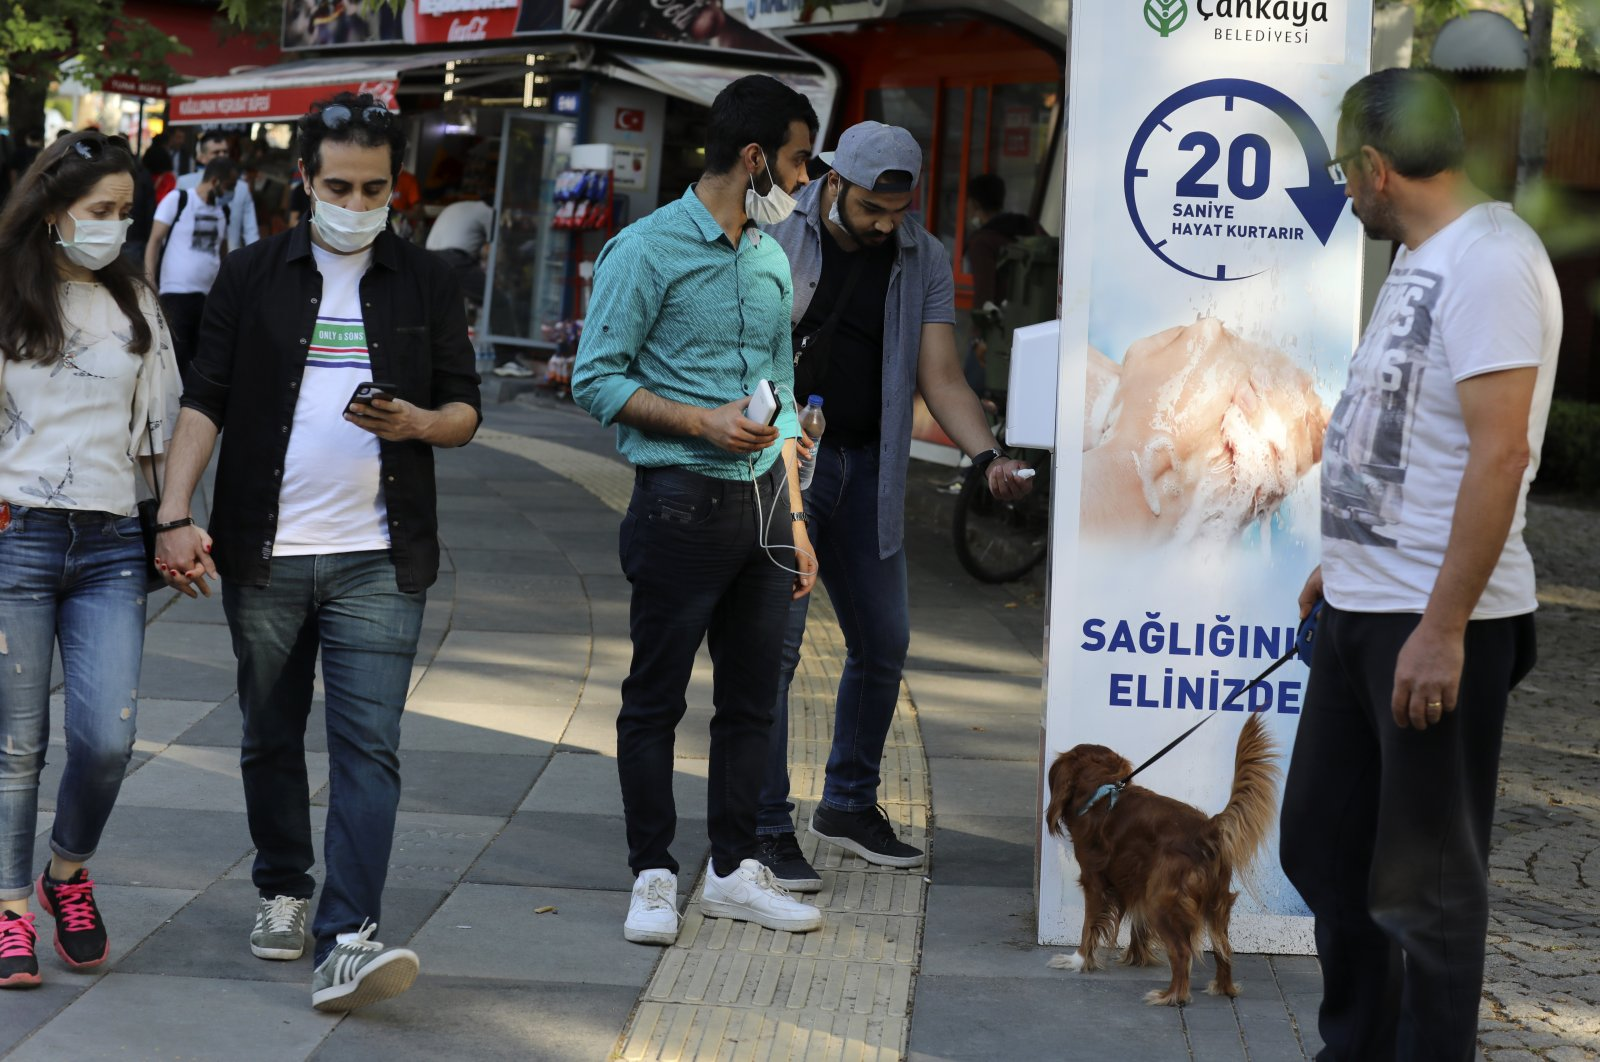 People wearing face masks use disinfectant at the entrance of a public garden, in Ankara, Turkey, June 14, 2020. (AP Photo)